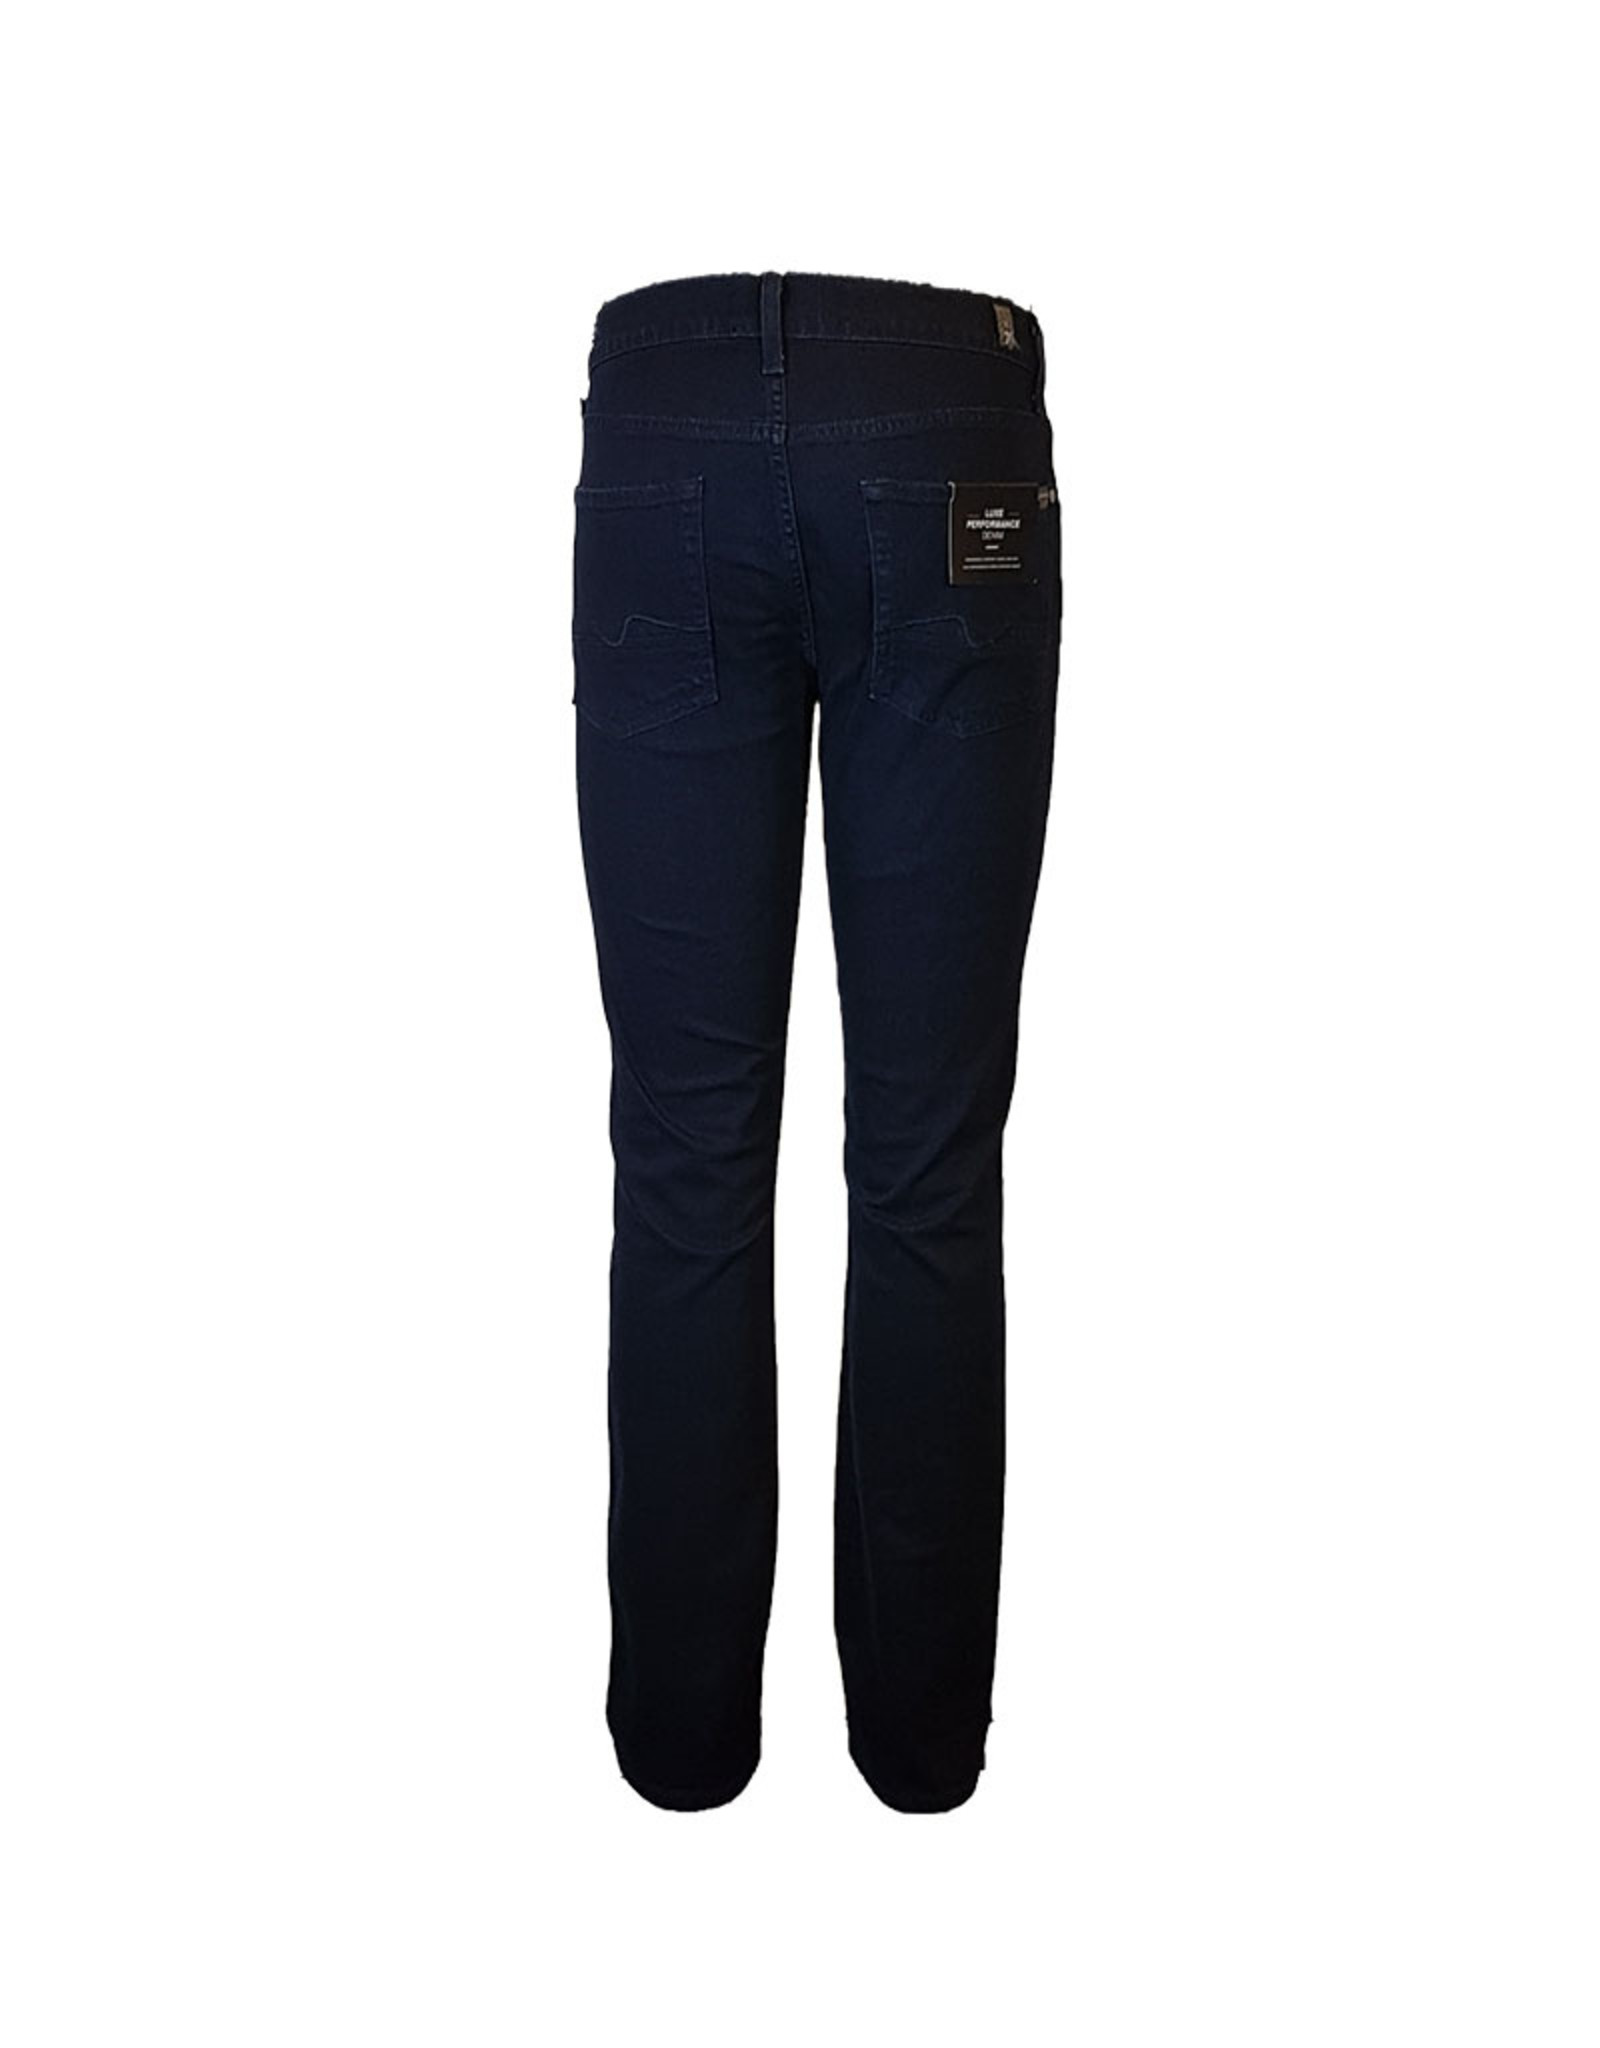 7 For All Mankind 7FAM jeans blauw Slimmy SMSR460AH